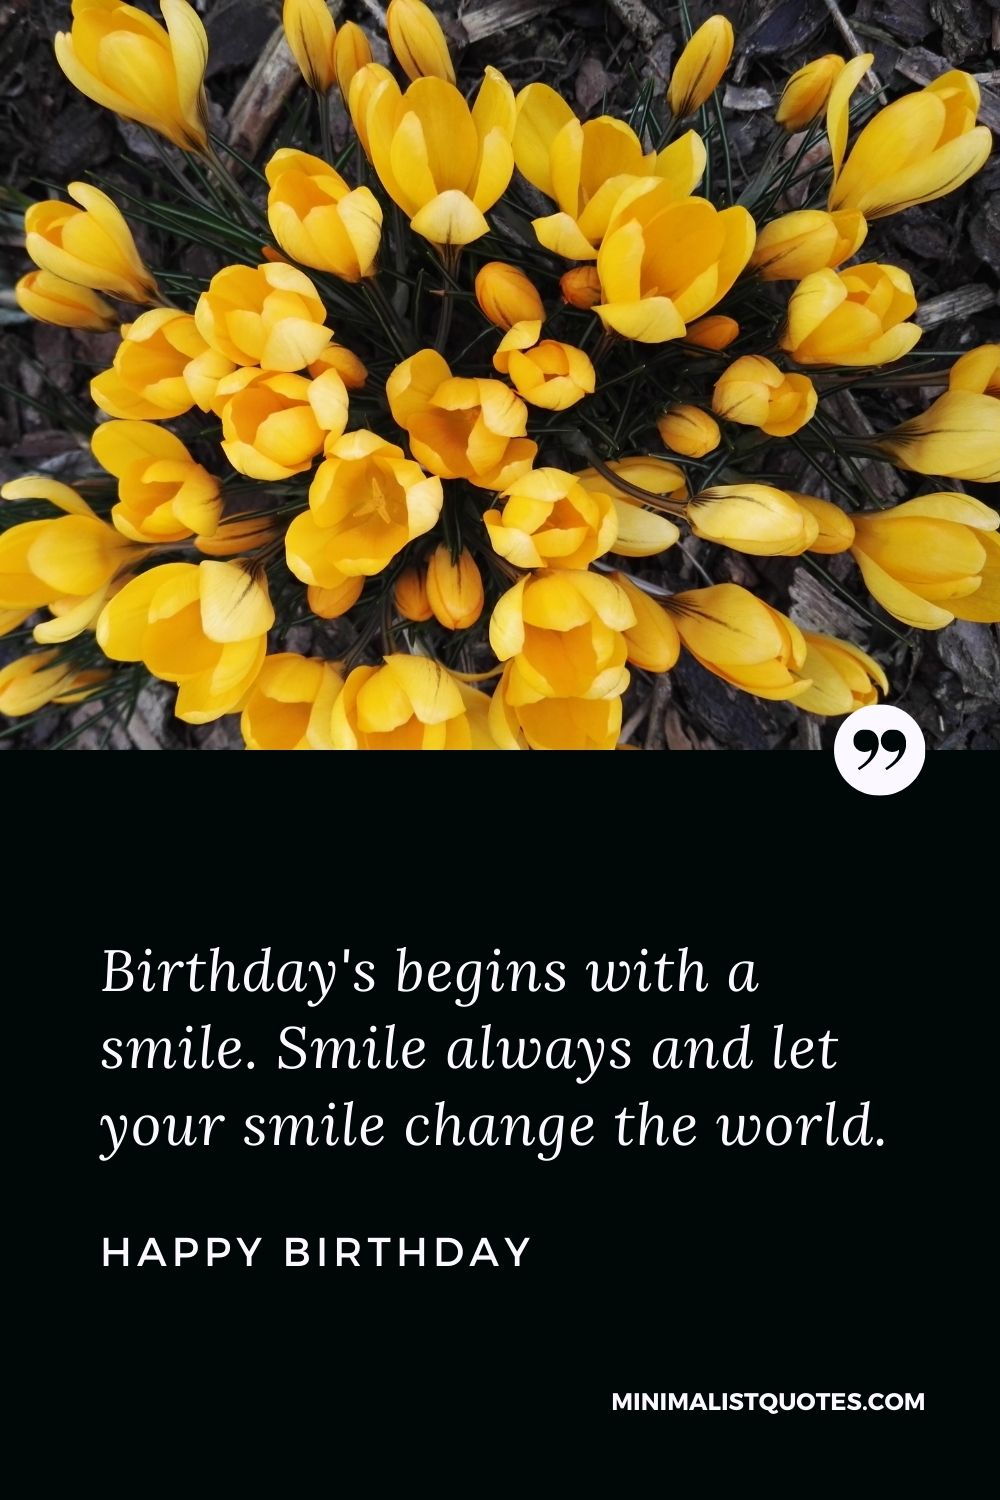 Happy Birthday Wishes - Birthday's begins with asmile. Smile always and let your smile change the world.